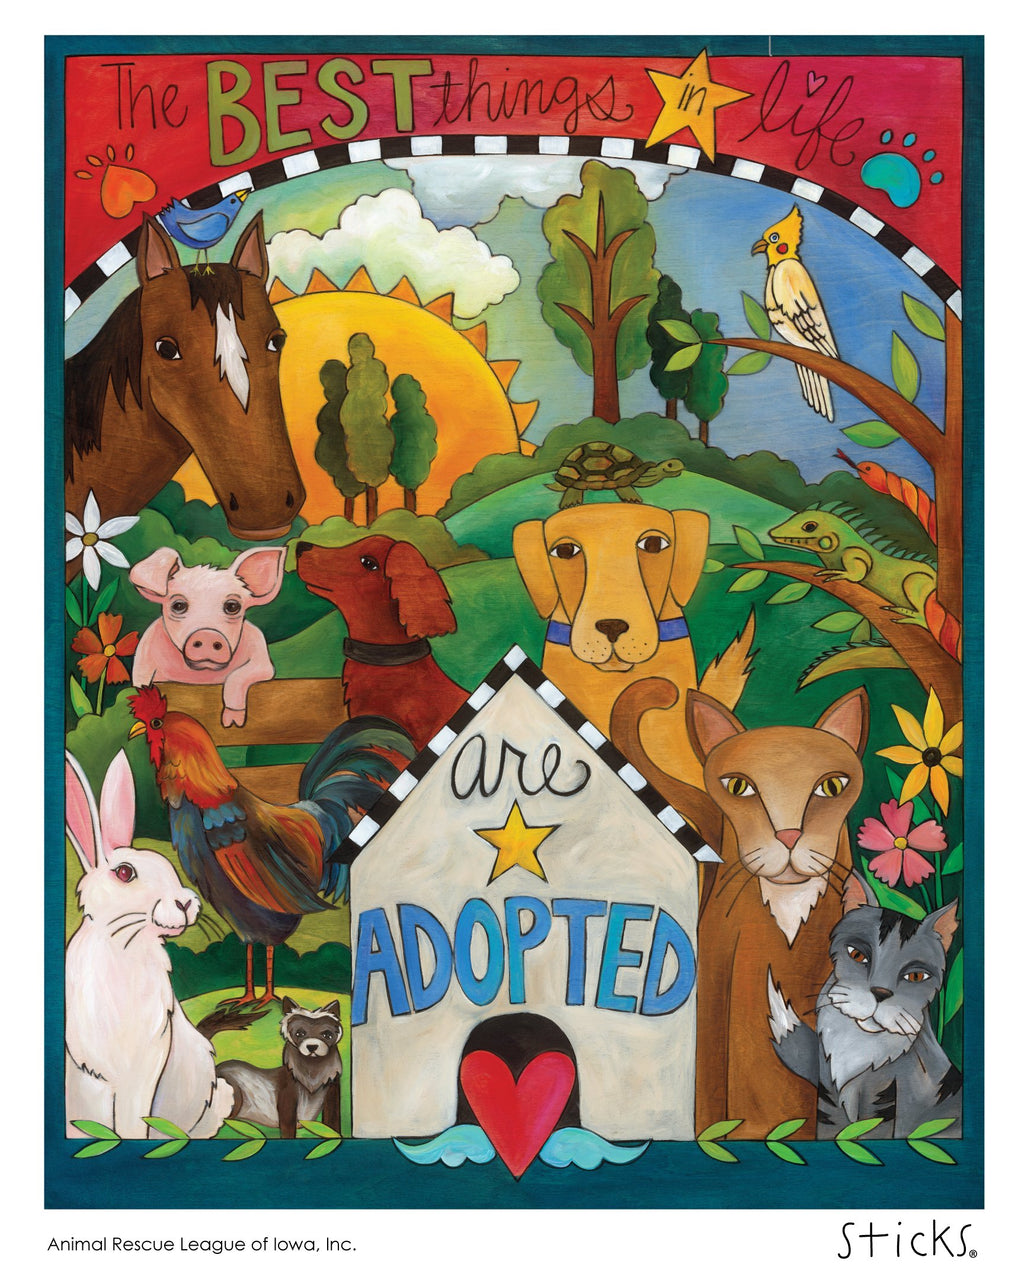 Iowa ARL Poster –  The best things in life are adopted